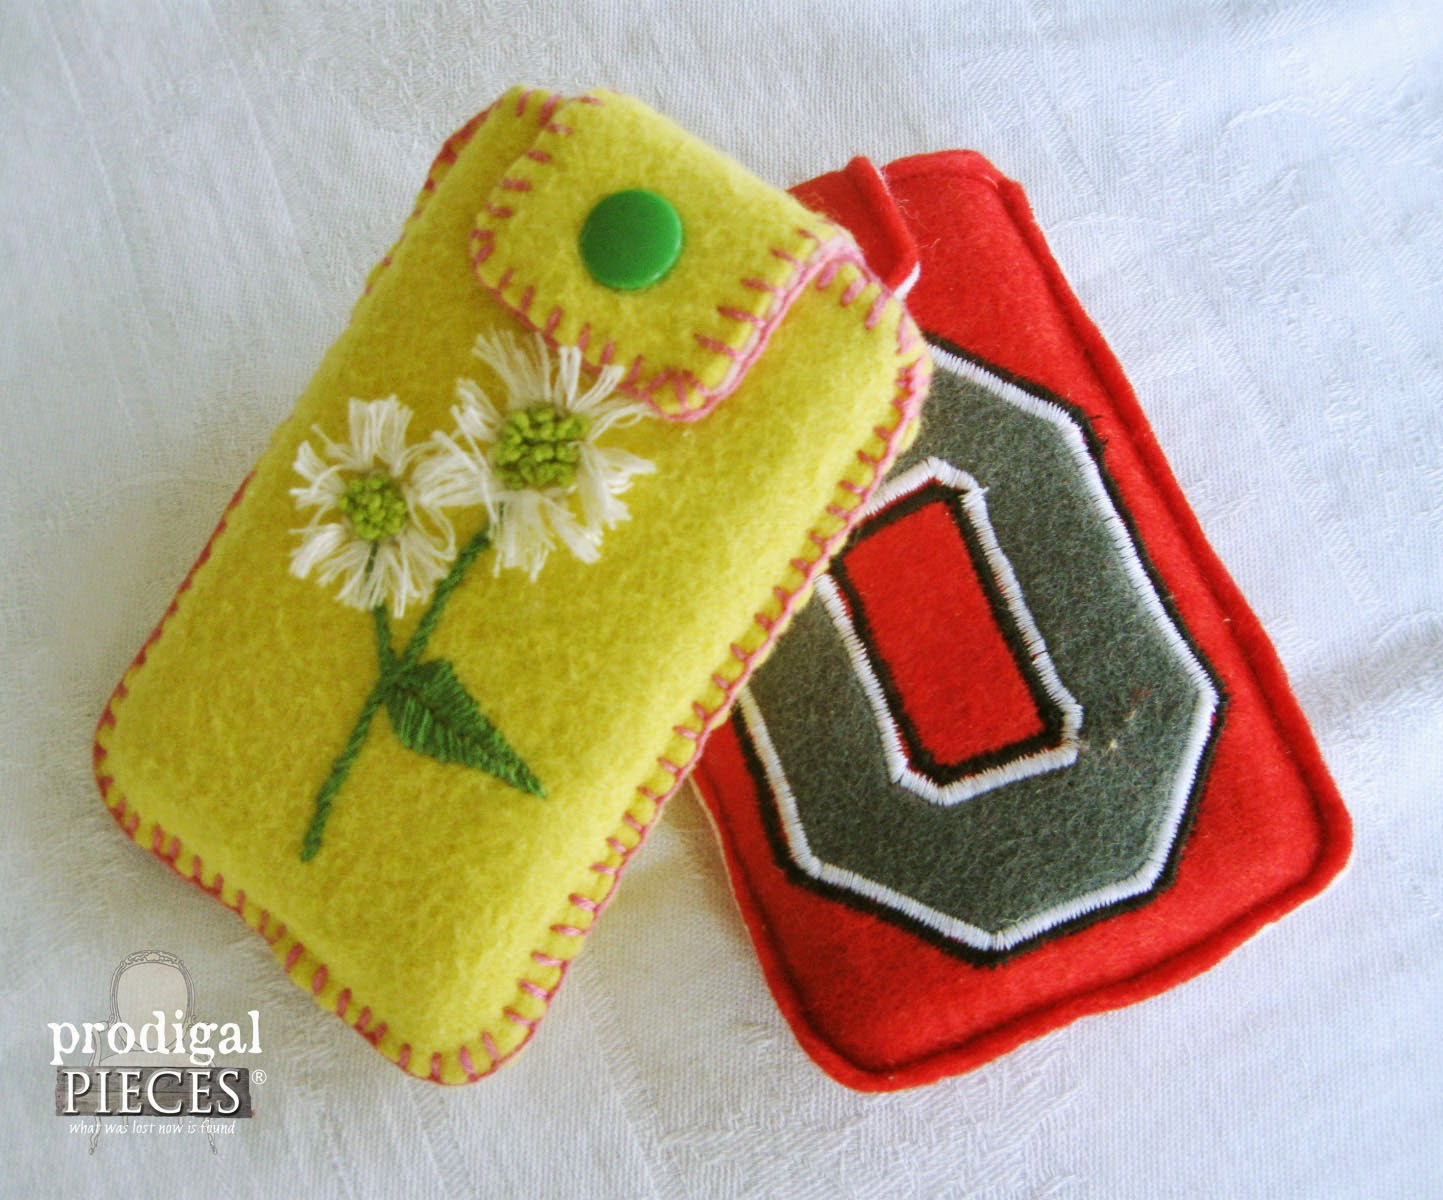 Handmade Holidays: Wool Felt Handmade Embroidered Cell Phone Cases by Prodigal Pieces www.prodigalpieces.com #prodigalpieces